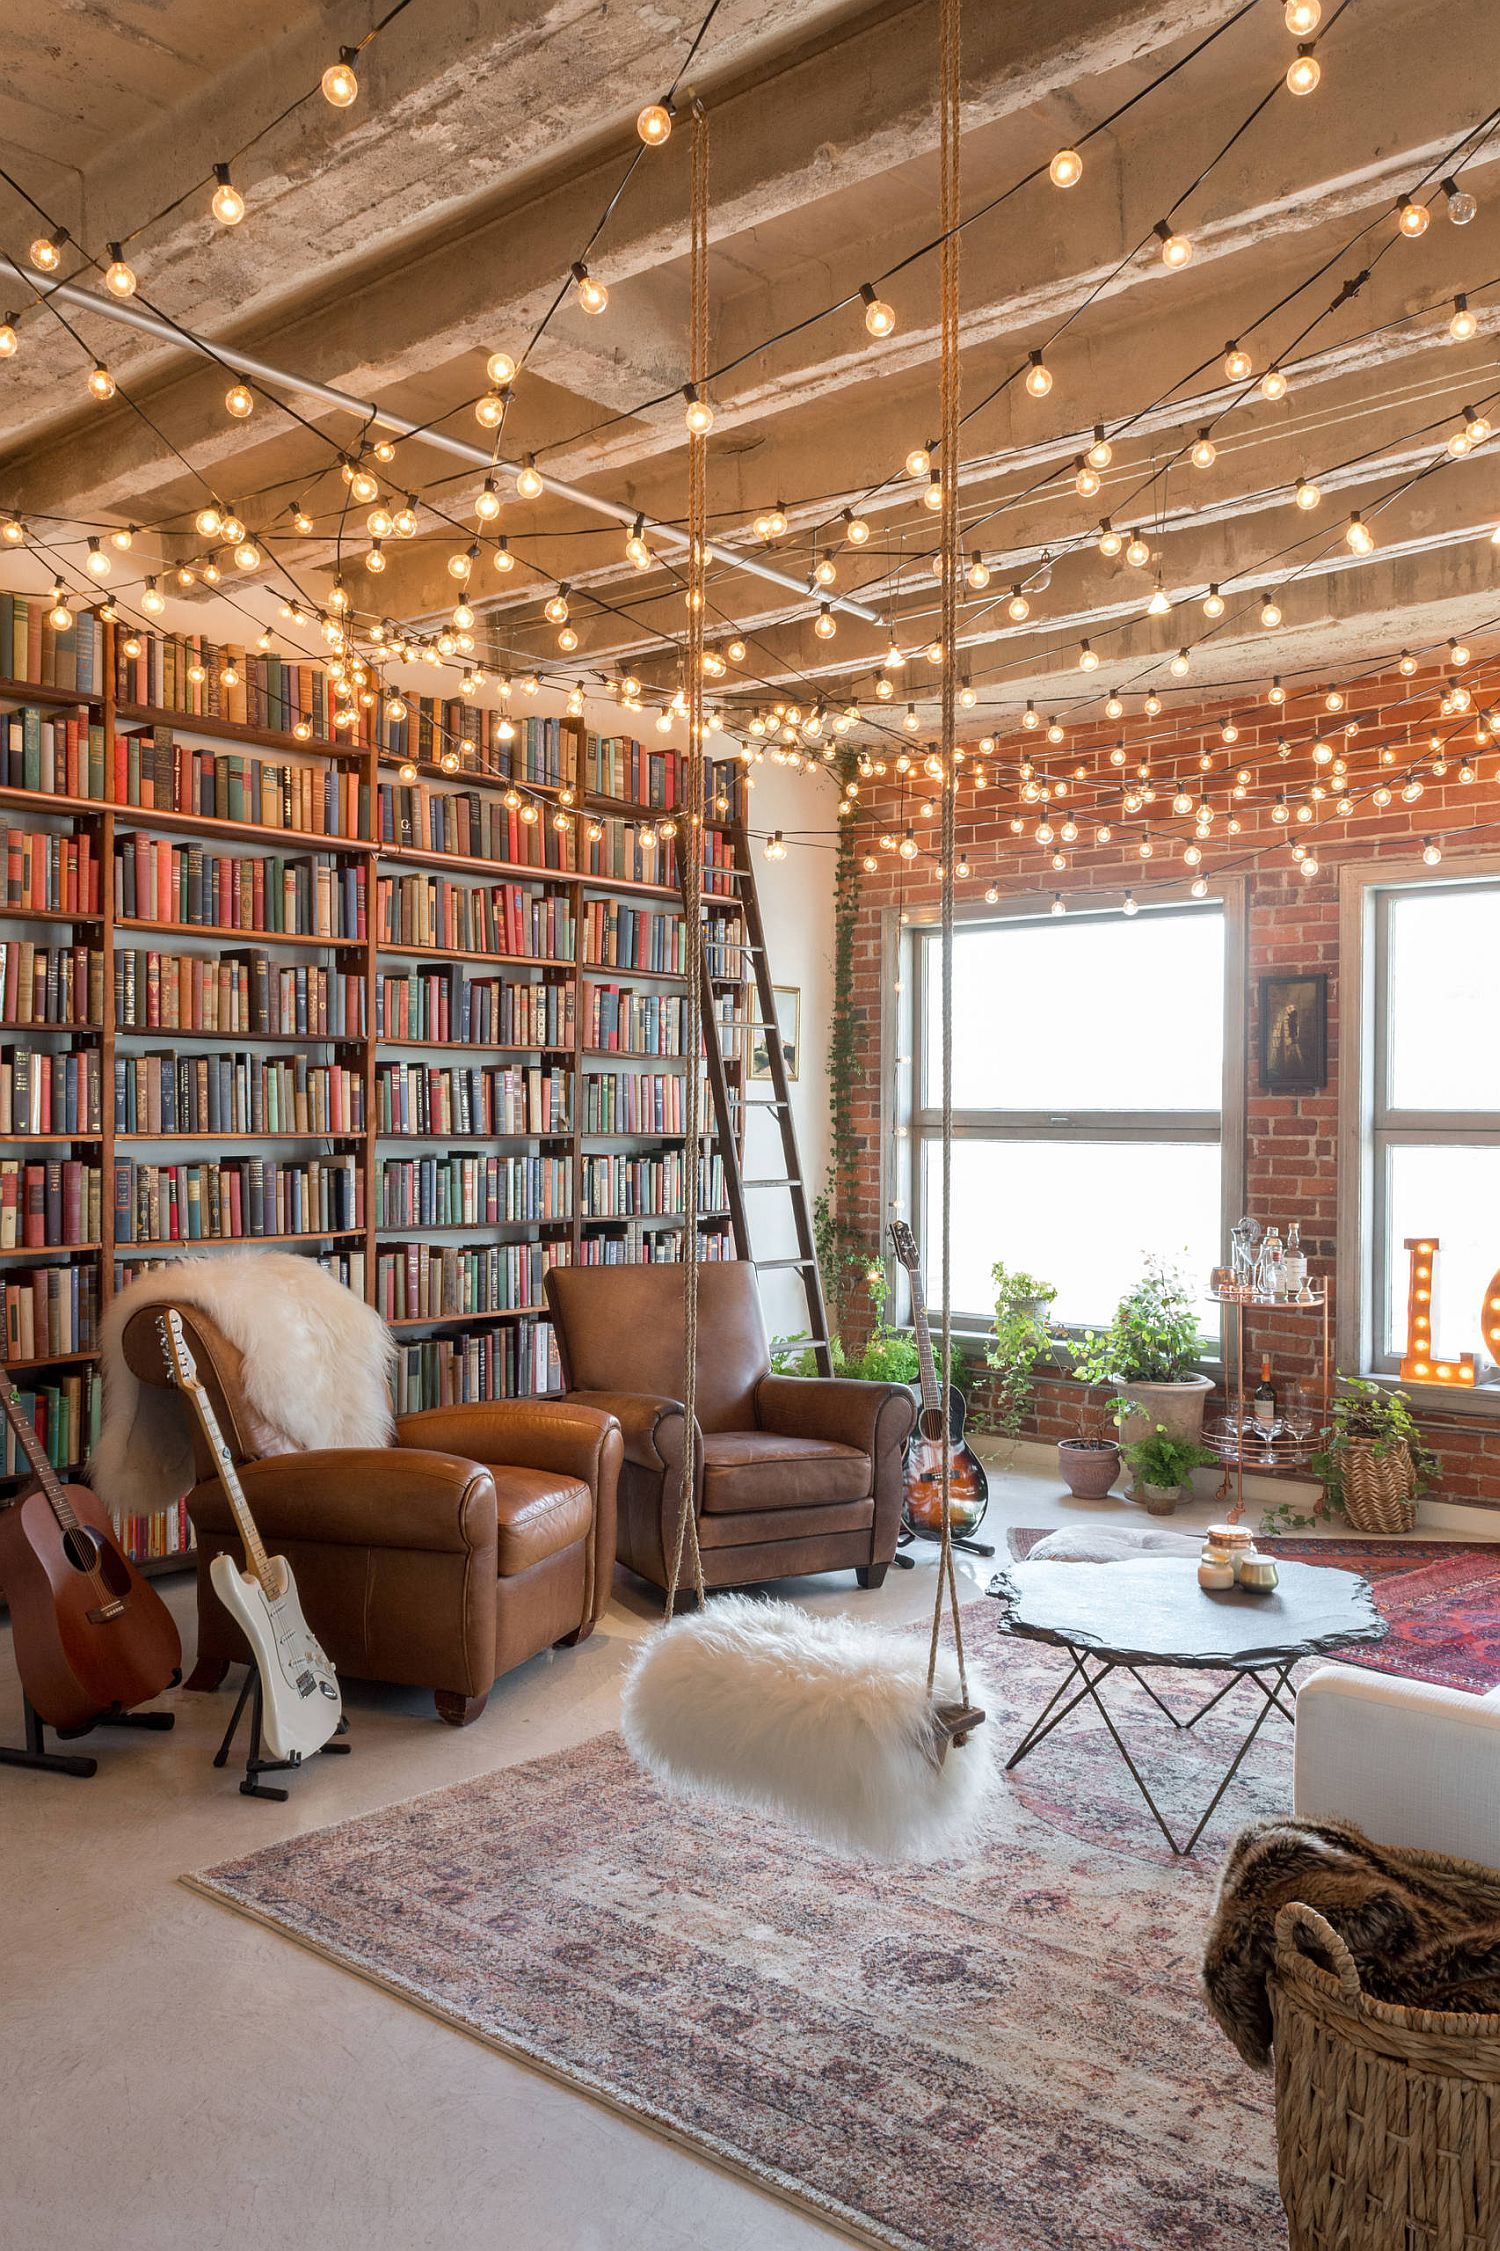 Floor-to-ceiling-bookshelf-with-brick-wall-backdrop-next-to-it-and-brilliant-string-lighting